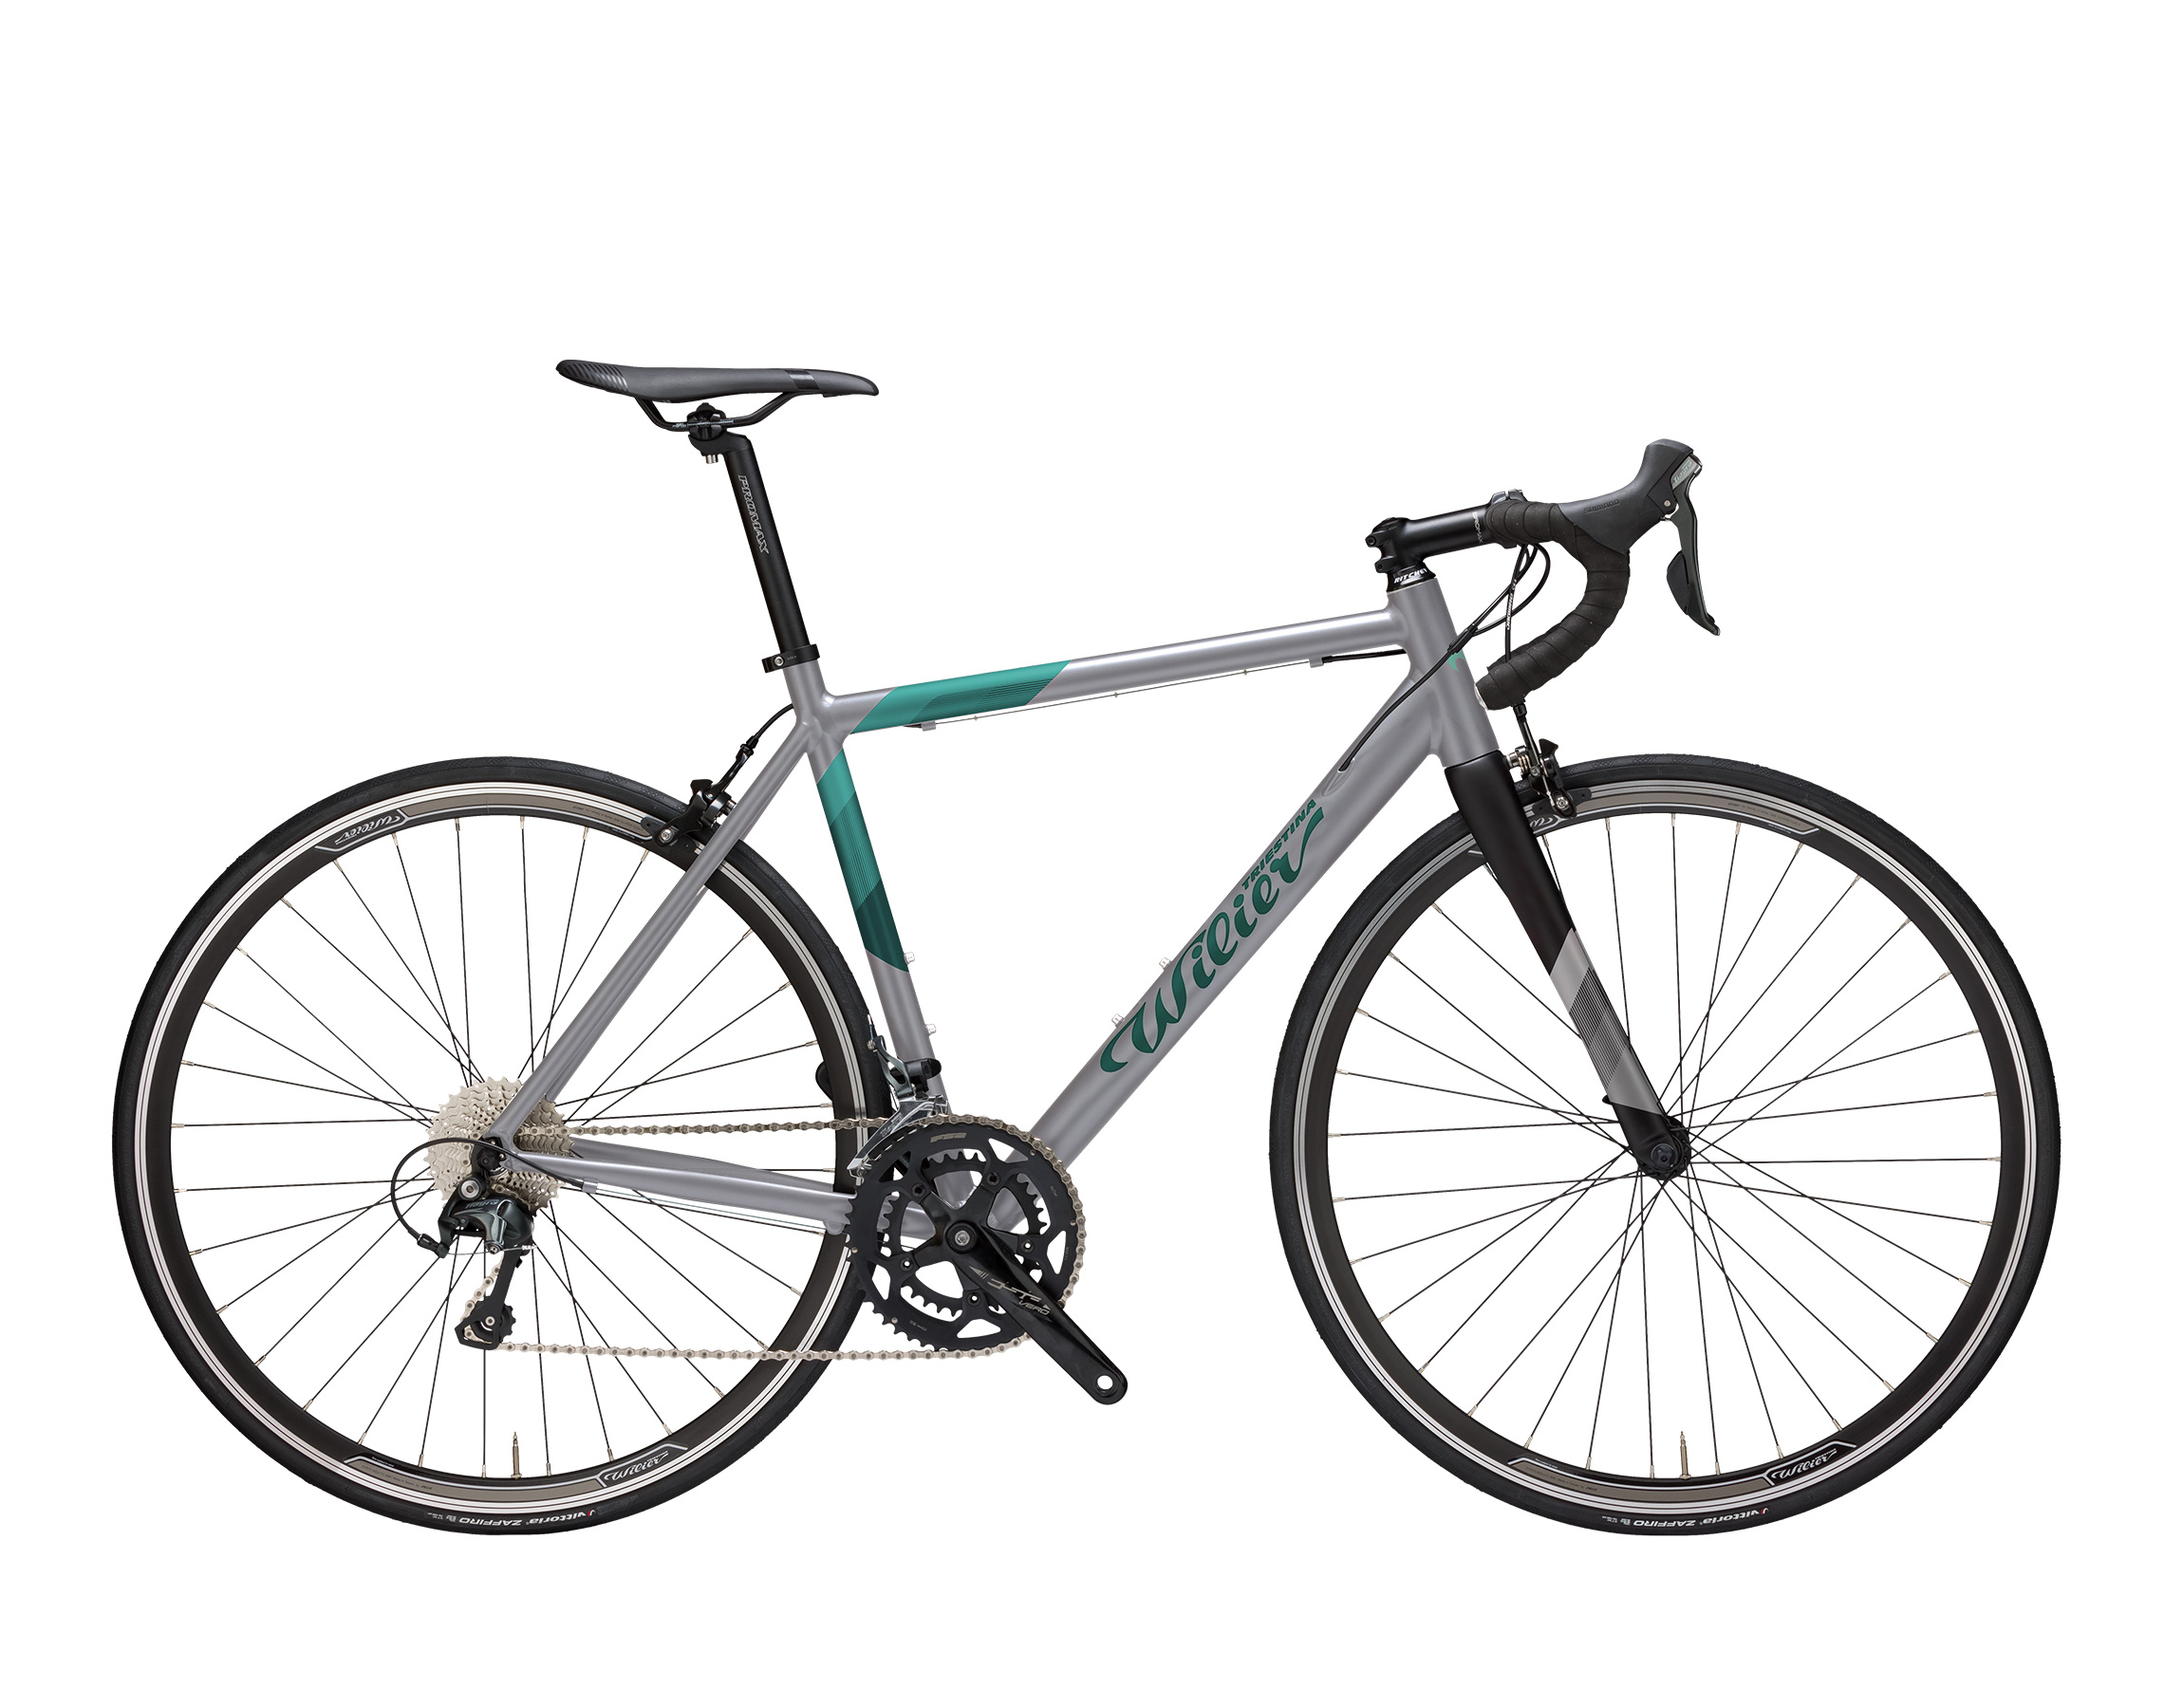 Wilier's Montegrappa